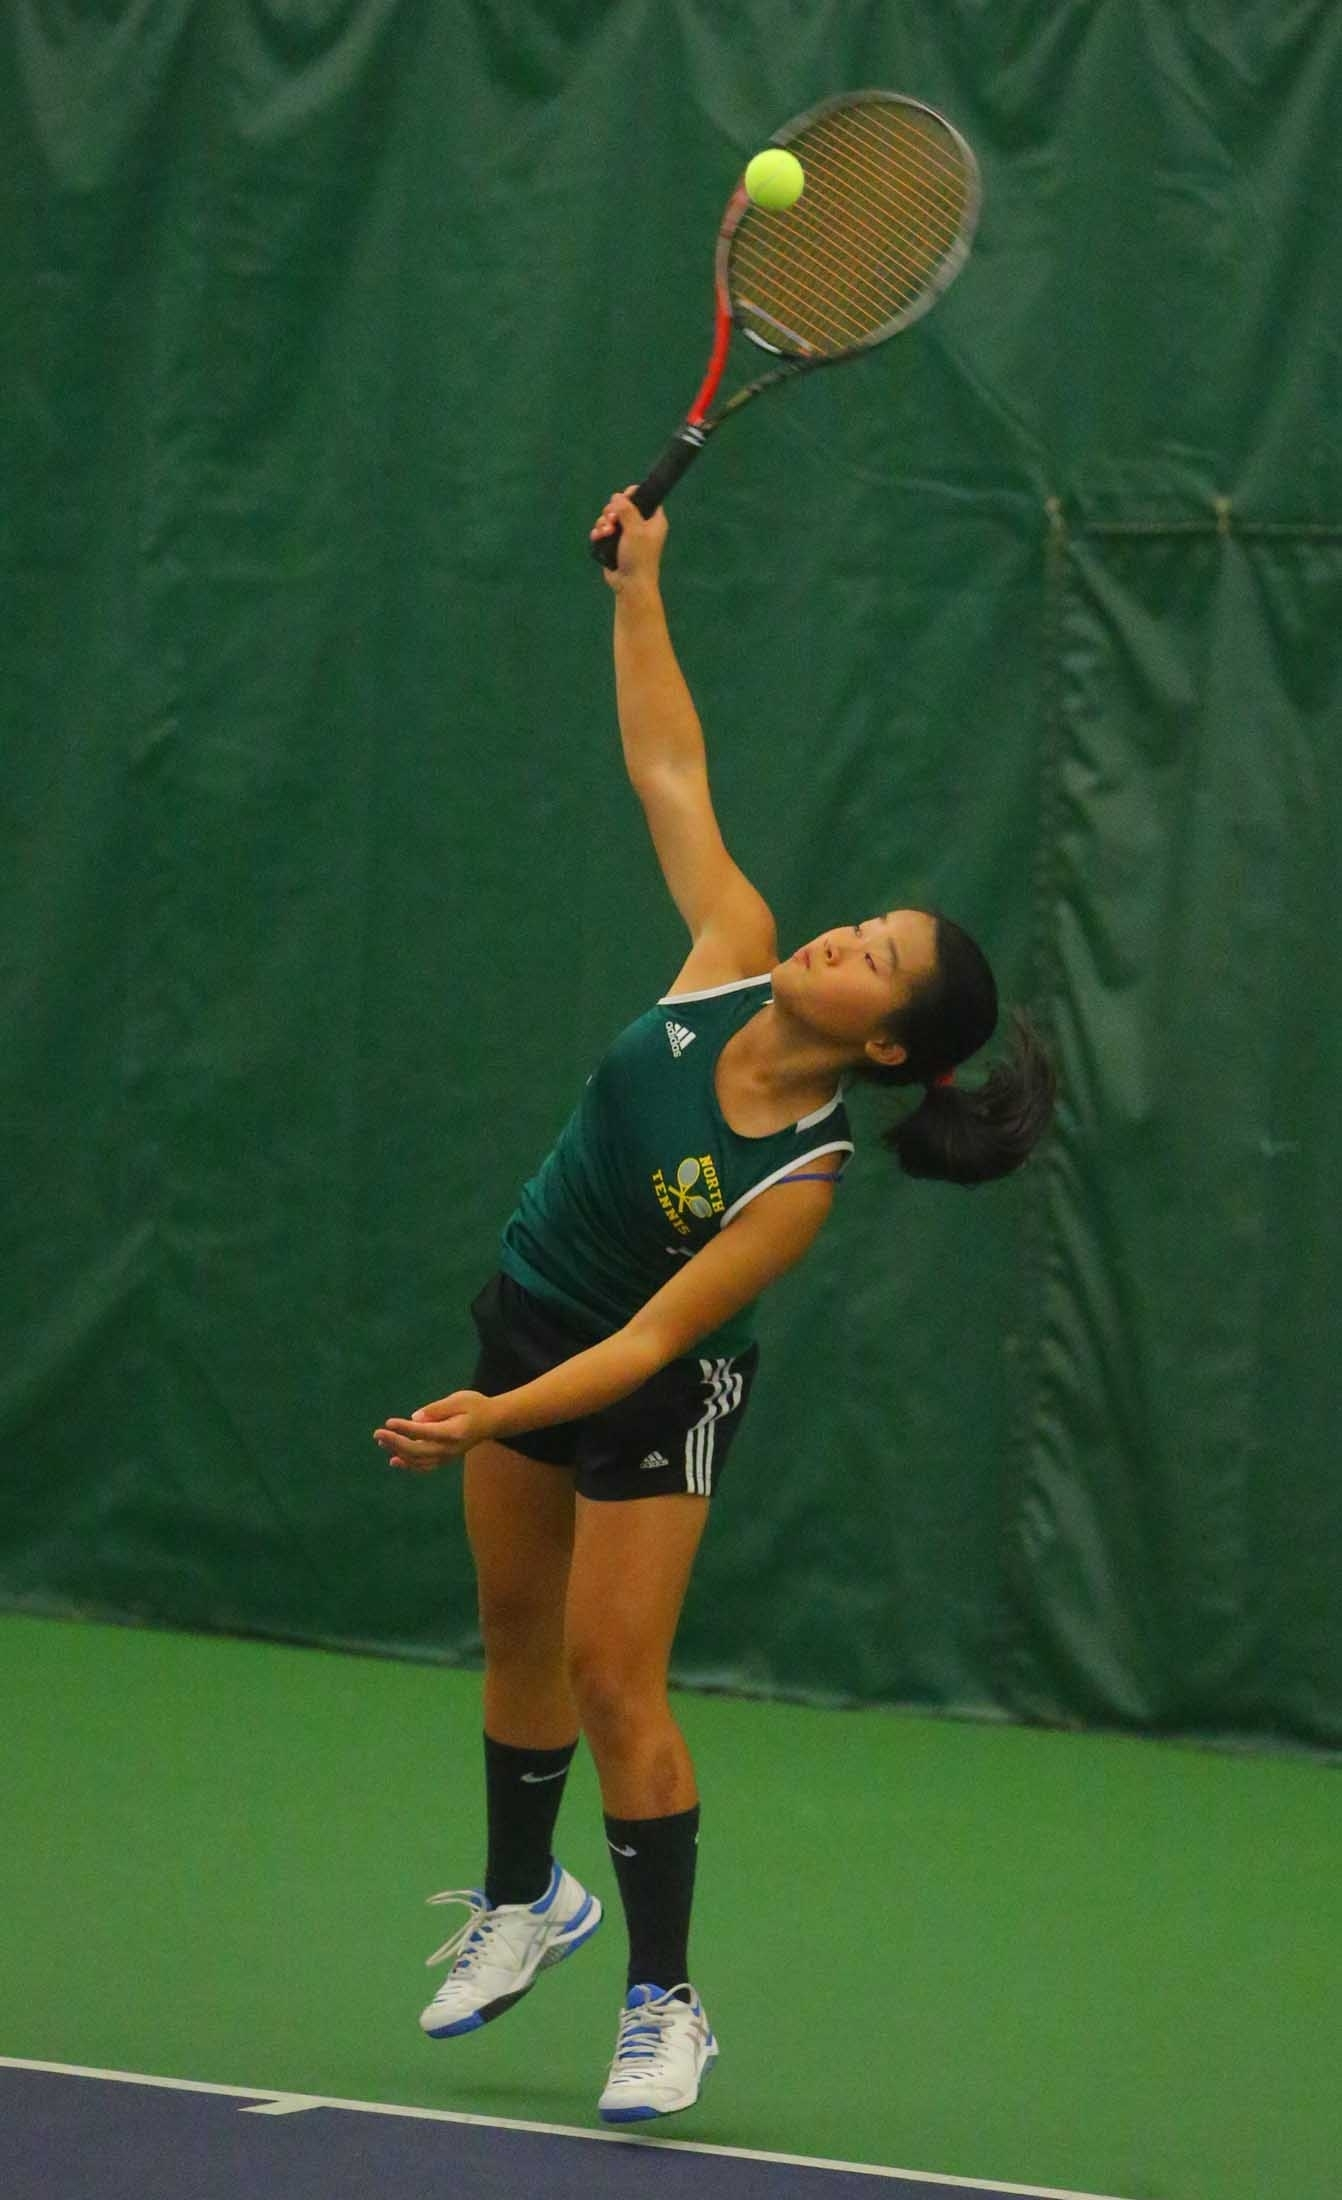 Section VI girls tennis semi singles finalist Eileen Wang, Williamsville North at Miller Tennis Center, in Amherst, N.Y. on Saturday Oct. 22, 2016. (John Hickey/Buffalo News)